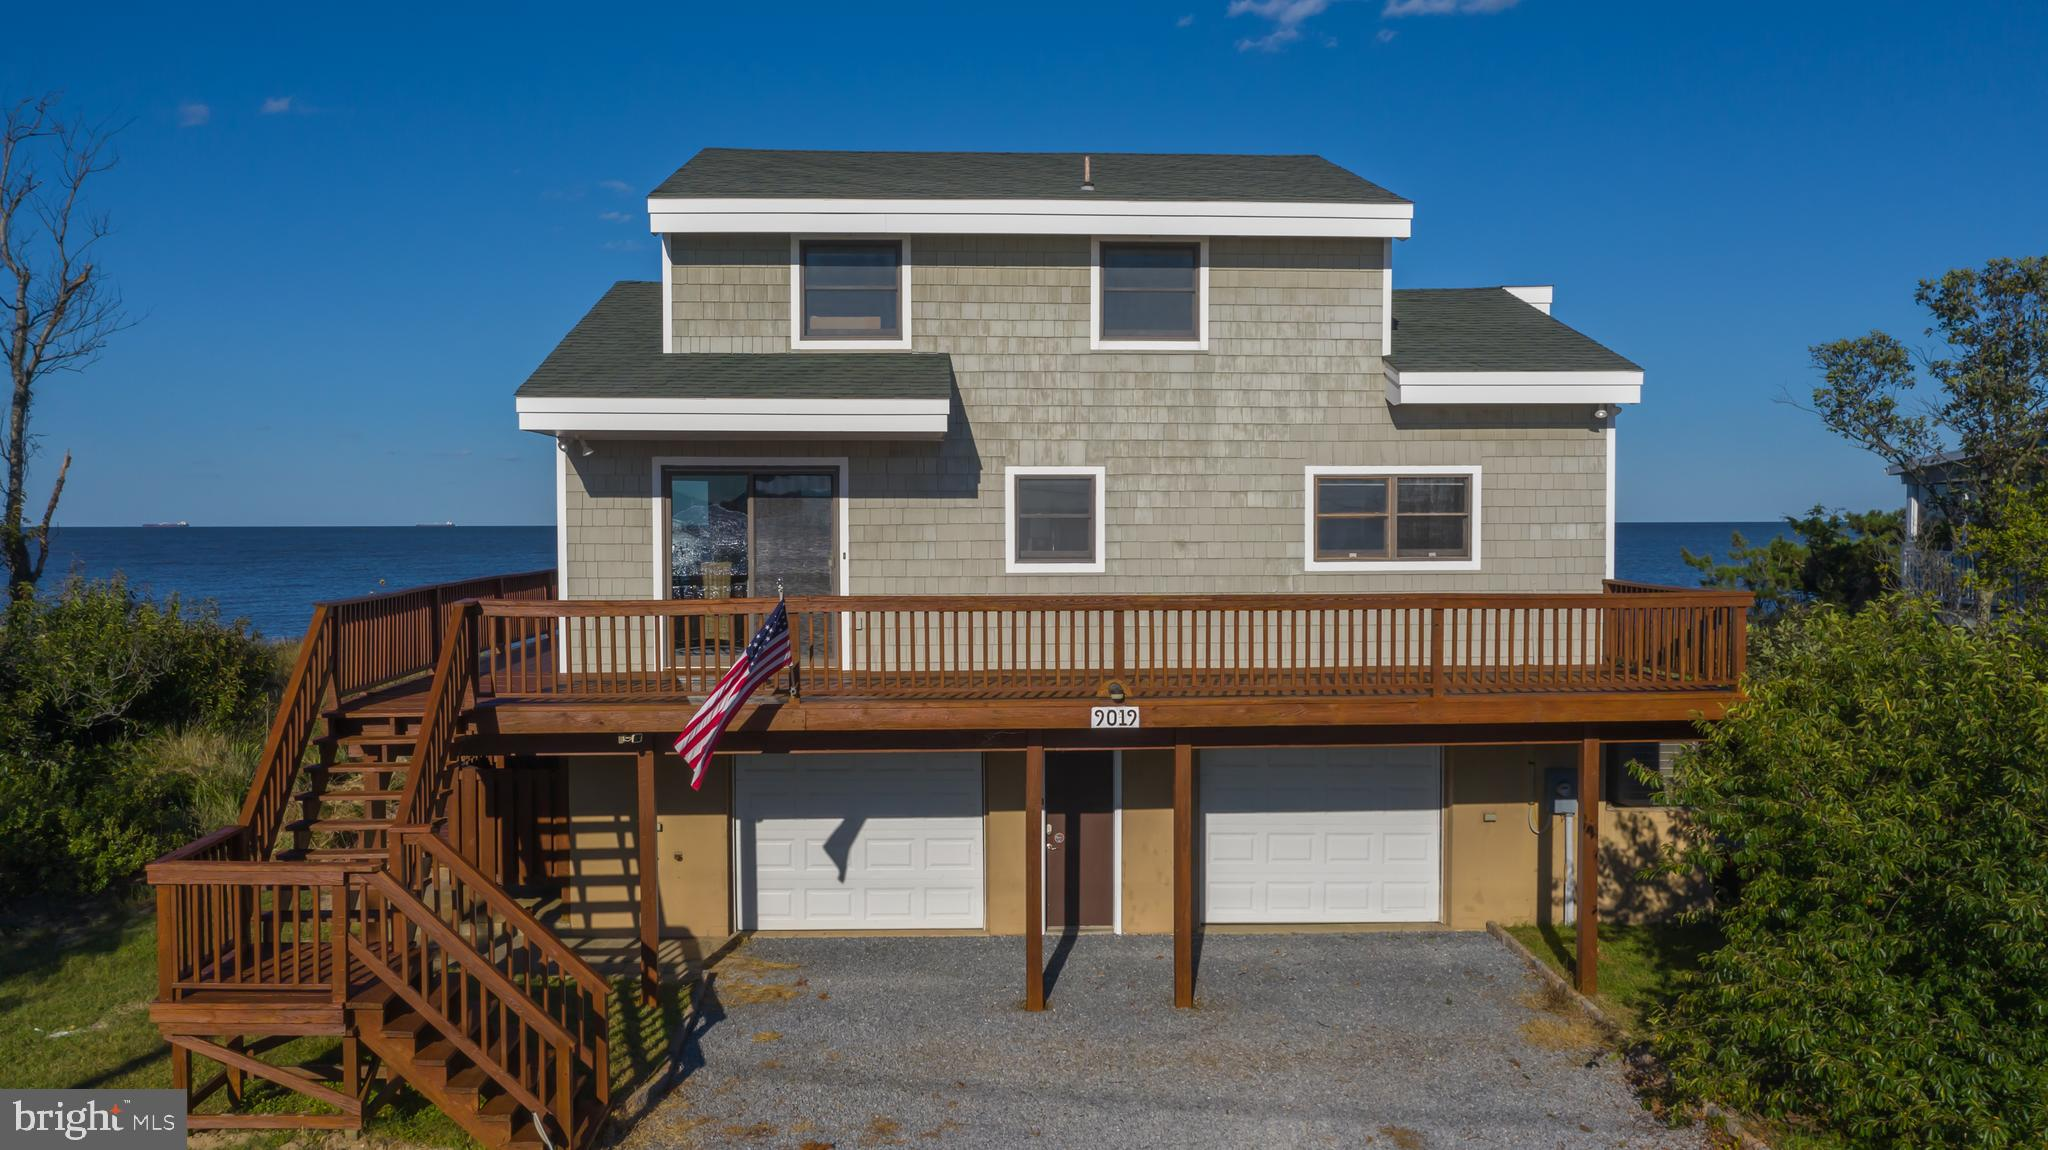 Breathtaking views coupled with comfortable elegance! This waterfront retreat offers thoughtful design to ensure the best panoramic views of Delaware Bay. As soon as you enter the main level, the Delaware Bay and Prime Hook Wildlife Refuge views are front and center!  Outdoor living space is a must when living directly on the water and this home has so much to offer. The main level features a screened-in porch, an open deck with 180-degree views of the Delaware Bay, while the front side of the home features and an expansive open deck with sweeping views of the Prime Hook Wildlife Refuge.   The main level features the great room, dining room, kitchen, owner's suite, and laundry/guest bedroom.  The upper level features two additional guest bedrooms with views of the Prime Hook Wildlife Refuge as well as a guest bathroom.  Prime Hook beach is very unique due to the fact that the beach is exclusively private.  Literally, you walk down your private boardwalk, cross over the dune and your personal heaven is right there. After a long day on the beach, you'll enjoy rinsing off in the outdoor shower.  As an added bonus, the home features an enclosed two-car garage, making storage a none issue.  The septic system has been certified and all repairs will be completed prior to closing.  The septic system is permitted for a 2 bedroom home even though there are additional bedrooms that can be utilized. All that is missing from this home is you. Come take a tour of this once-in-a-lifetime property!  This is your chance to own bayfront property at the Delaware Beaches!